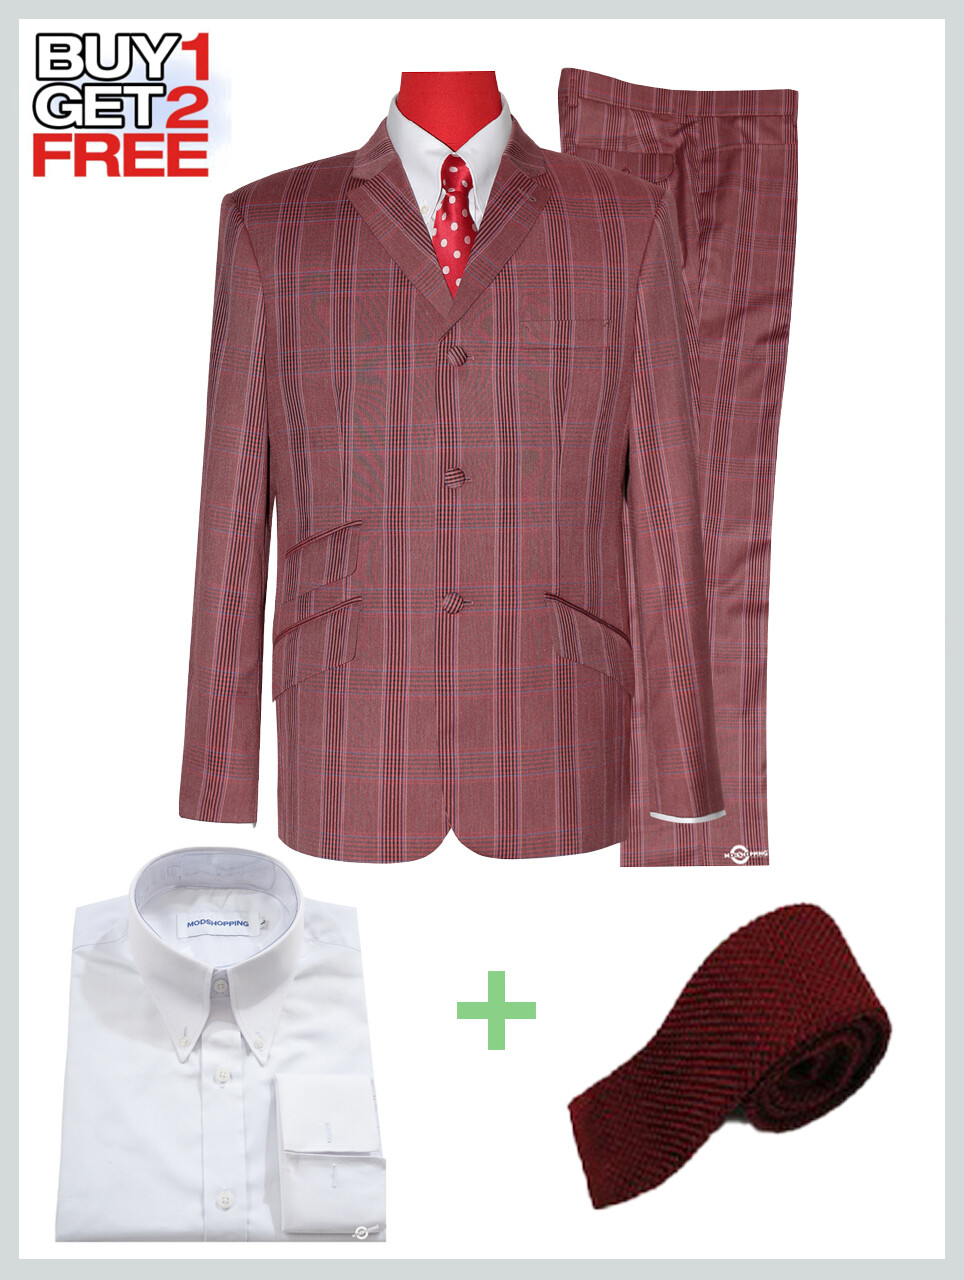 2 Piece Suit Package | Burnt Red Prince OF Check Suit For Man.